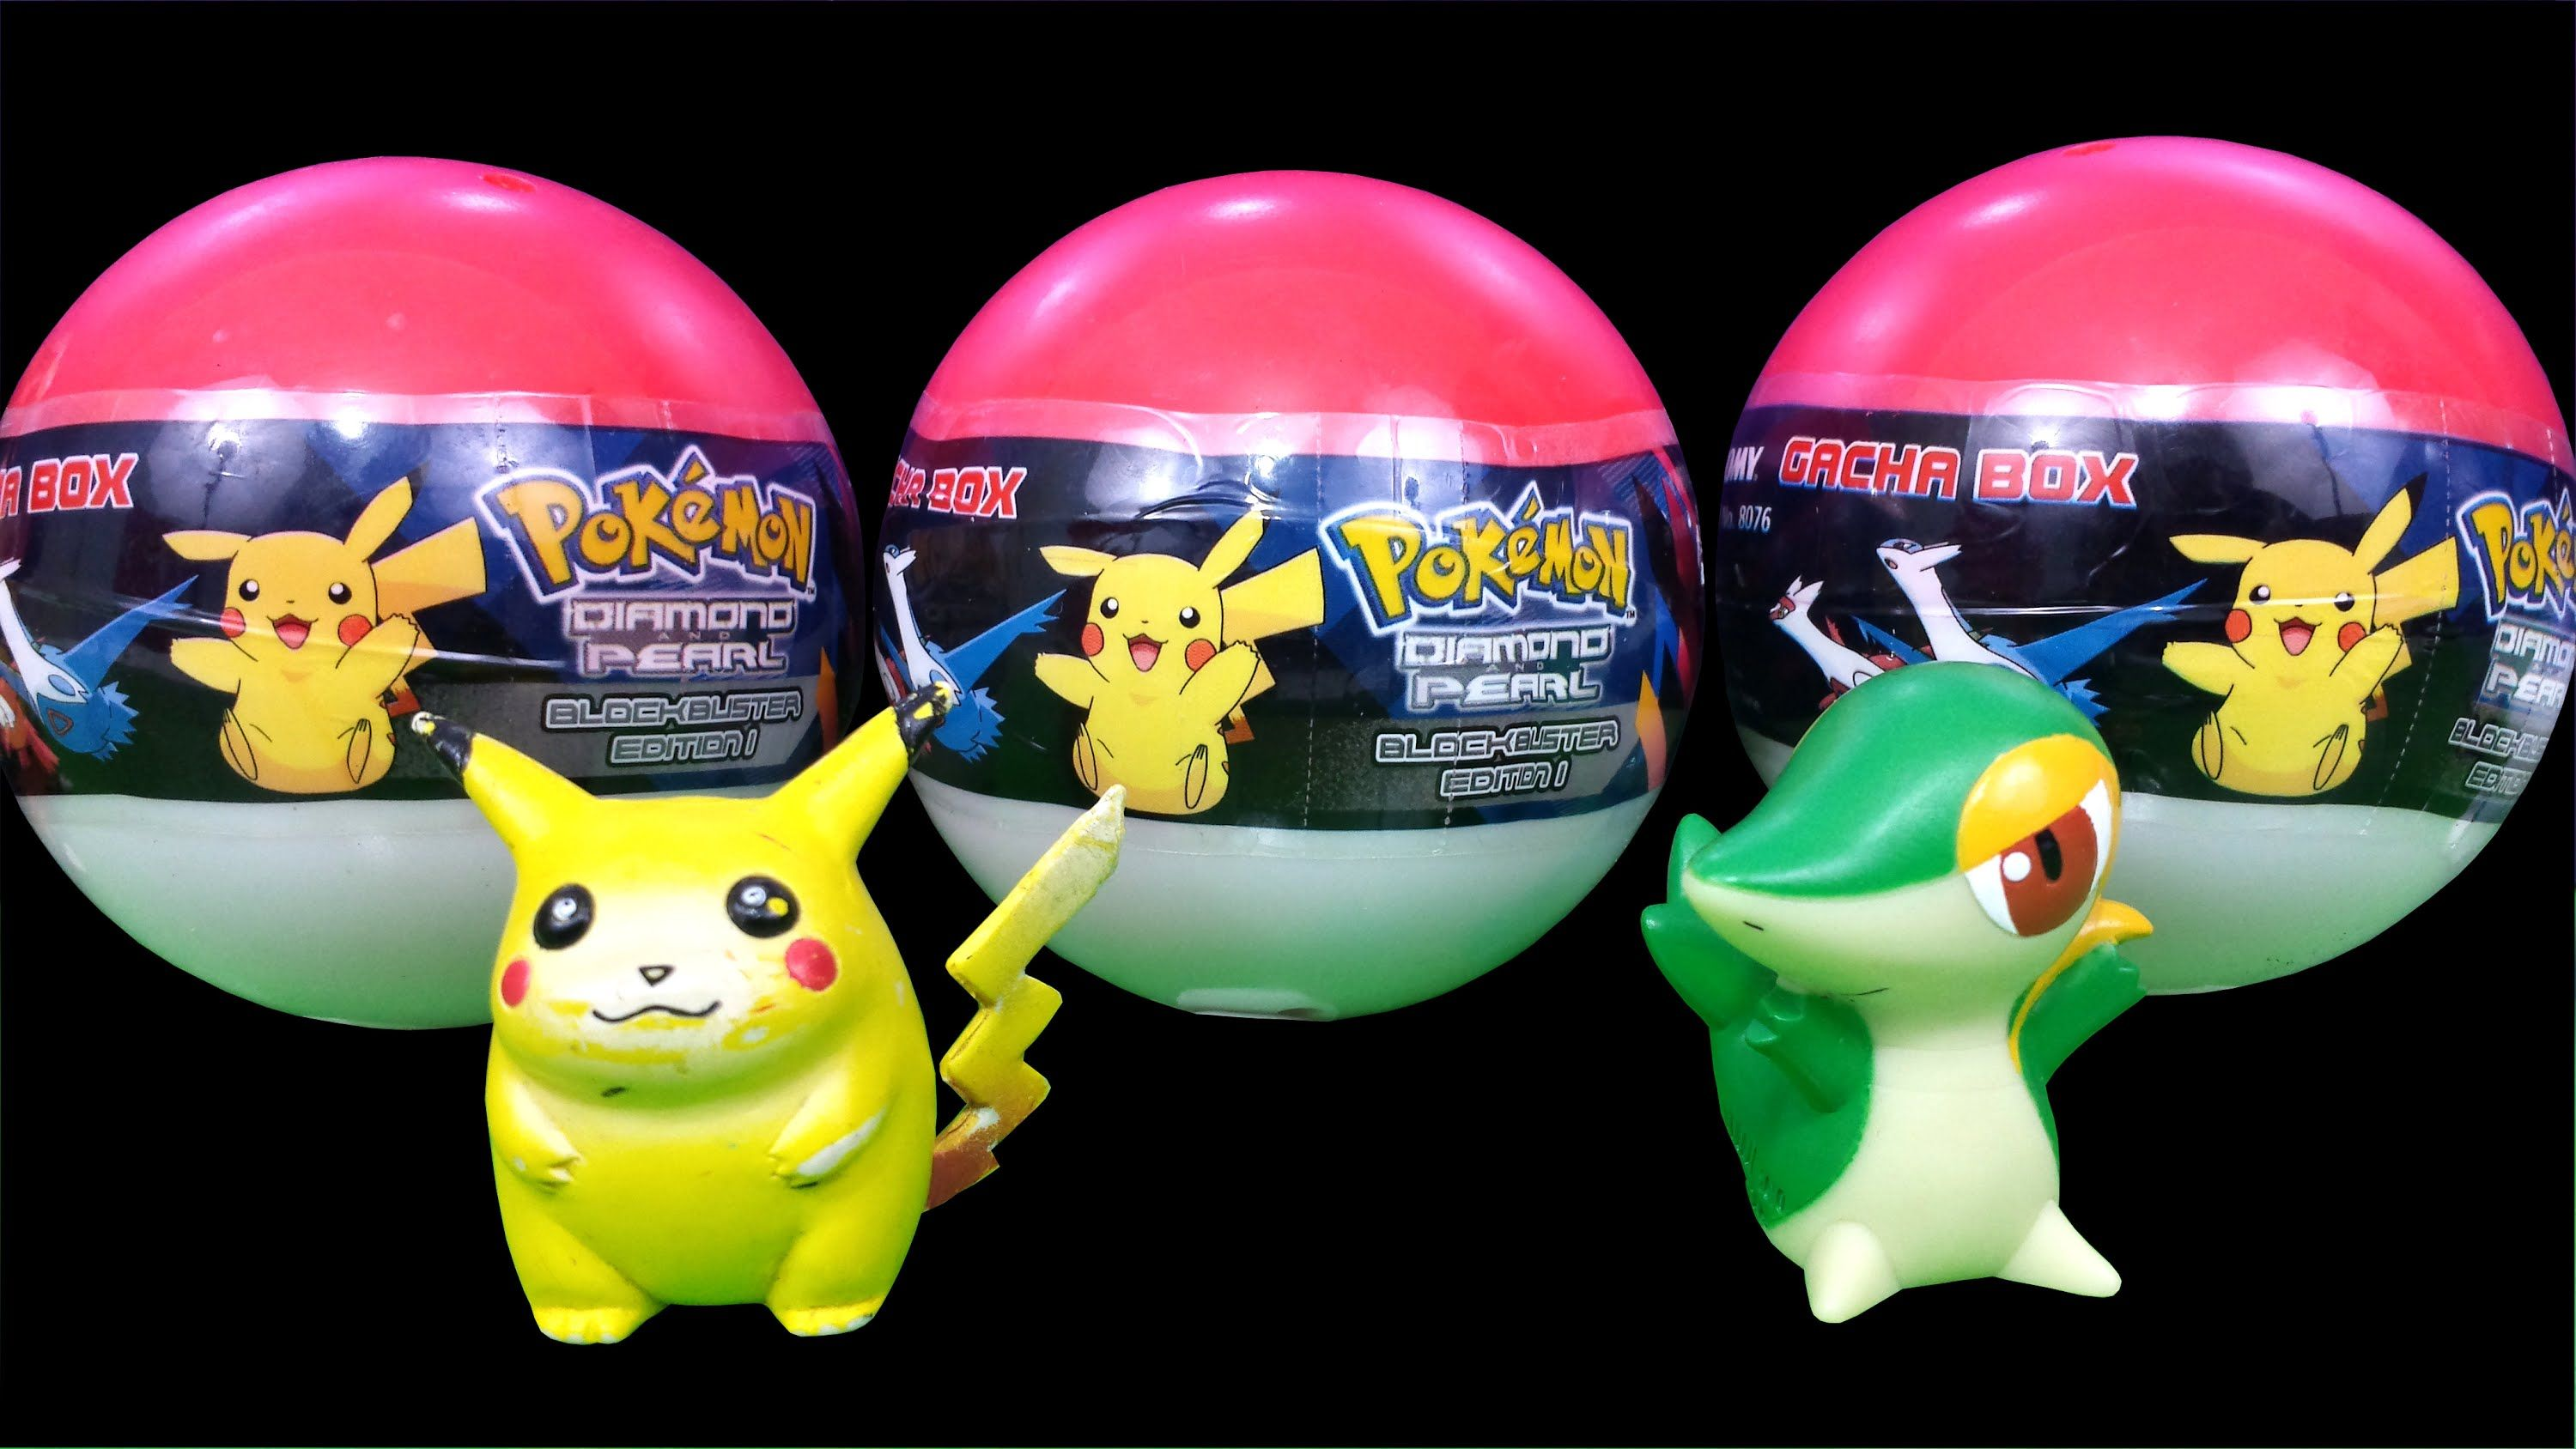 pokémon surprise balls gacha box diamond & pearl 神奇宝贝 ポケモン